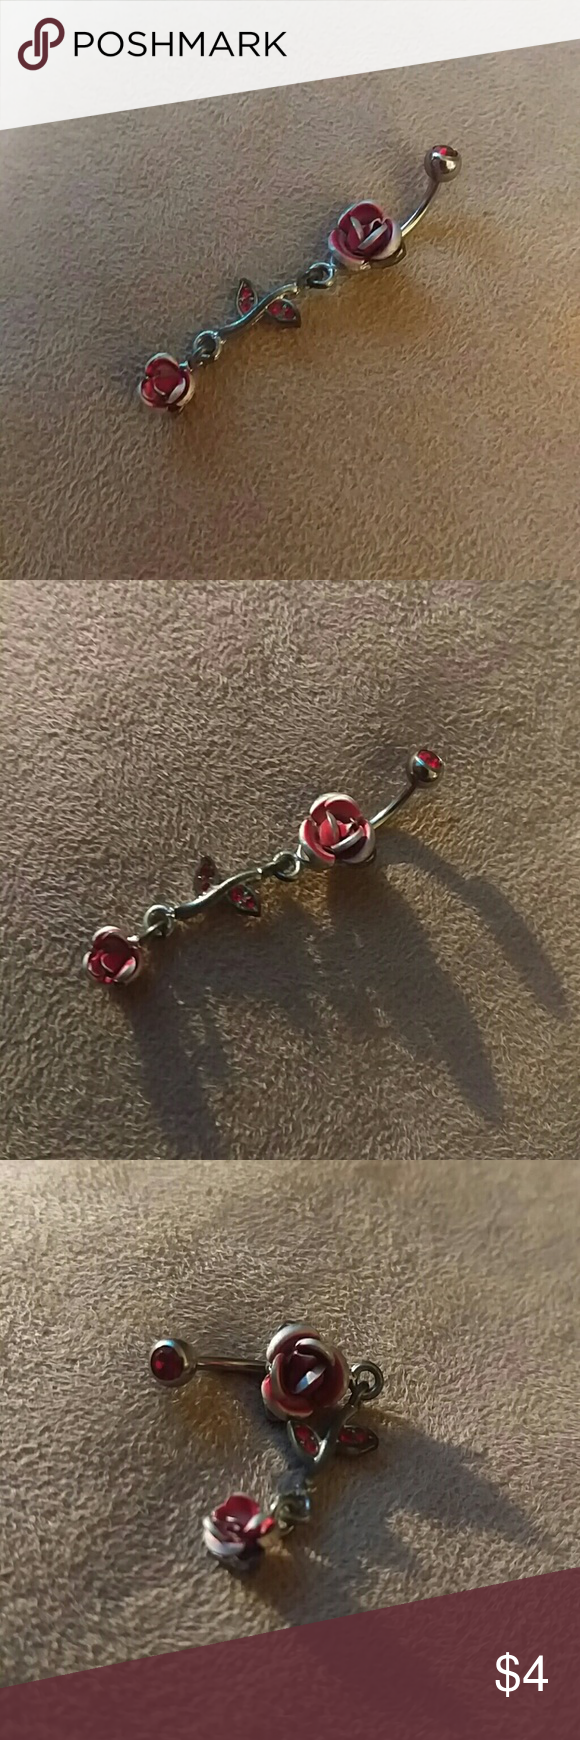 4 belly button piercing  LAST CHANCEDangly rose belly button ring